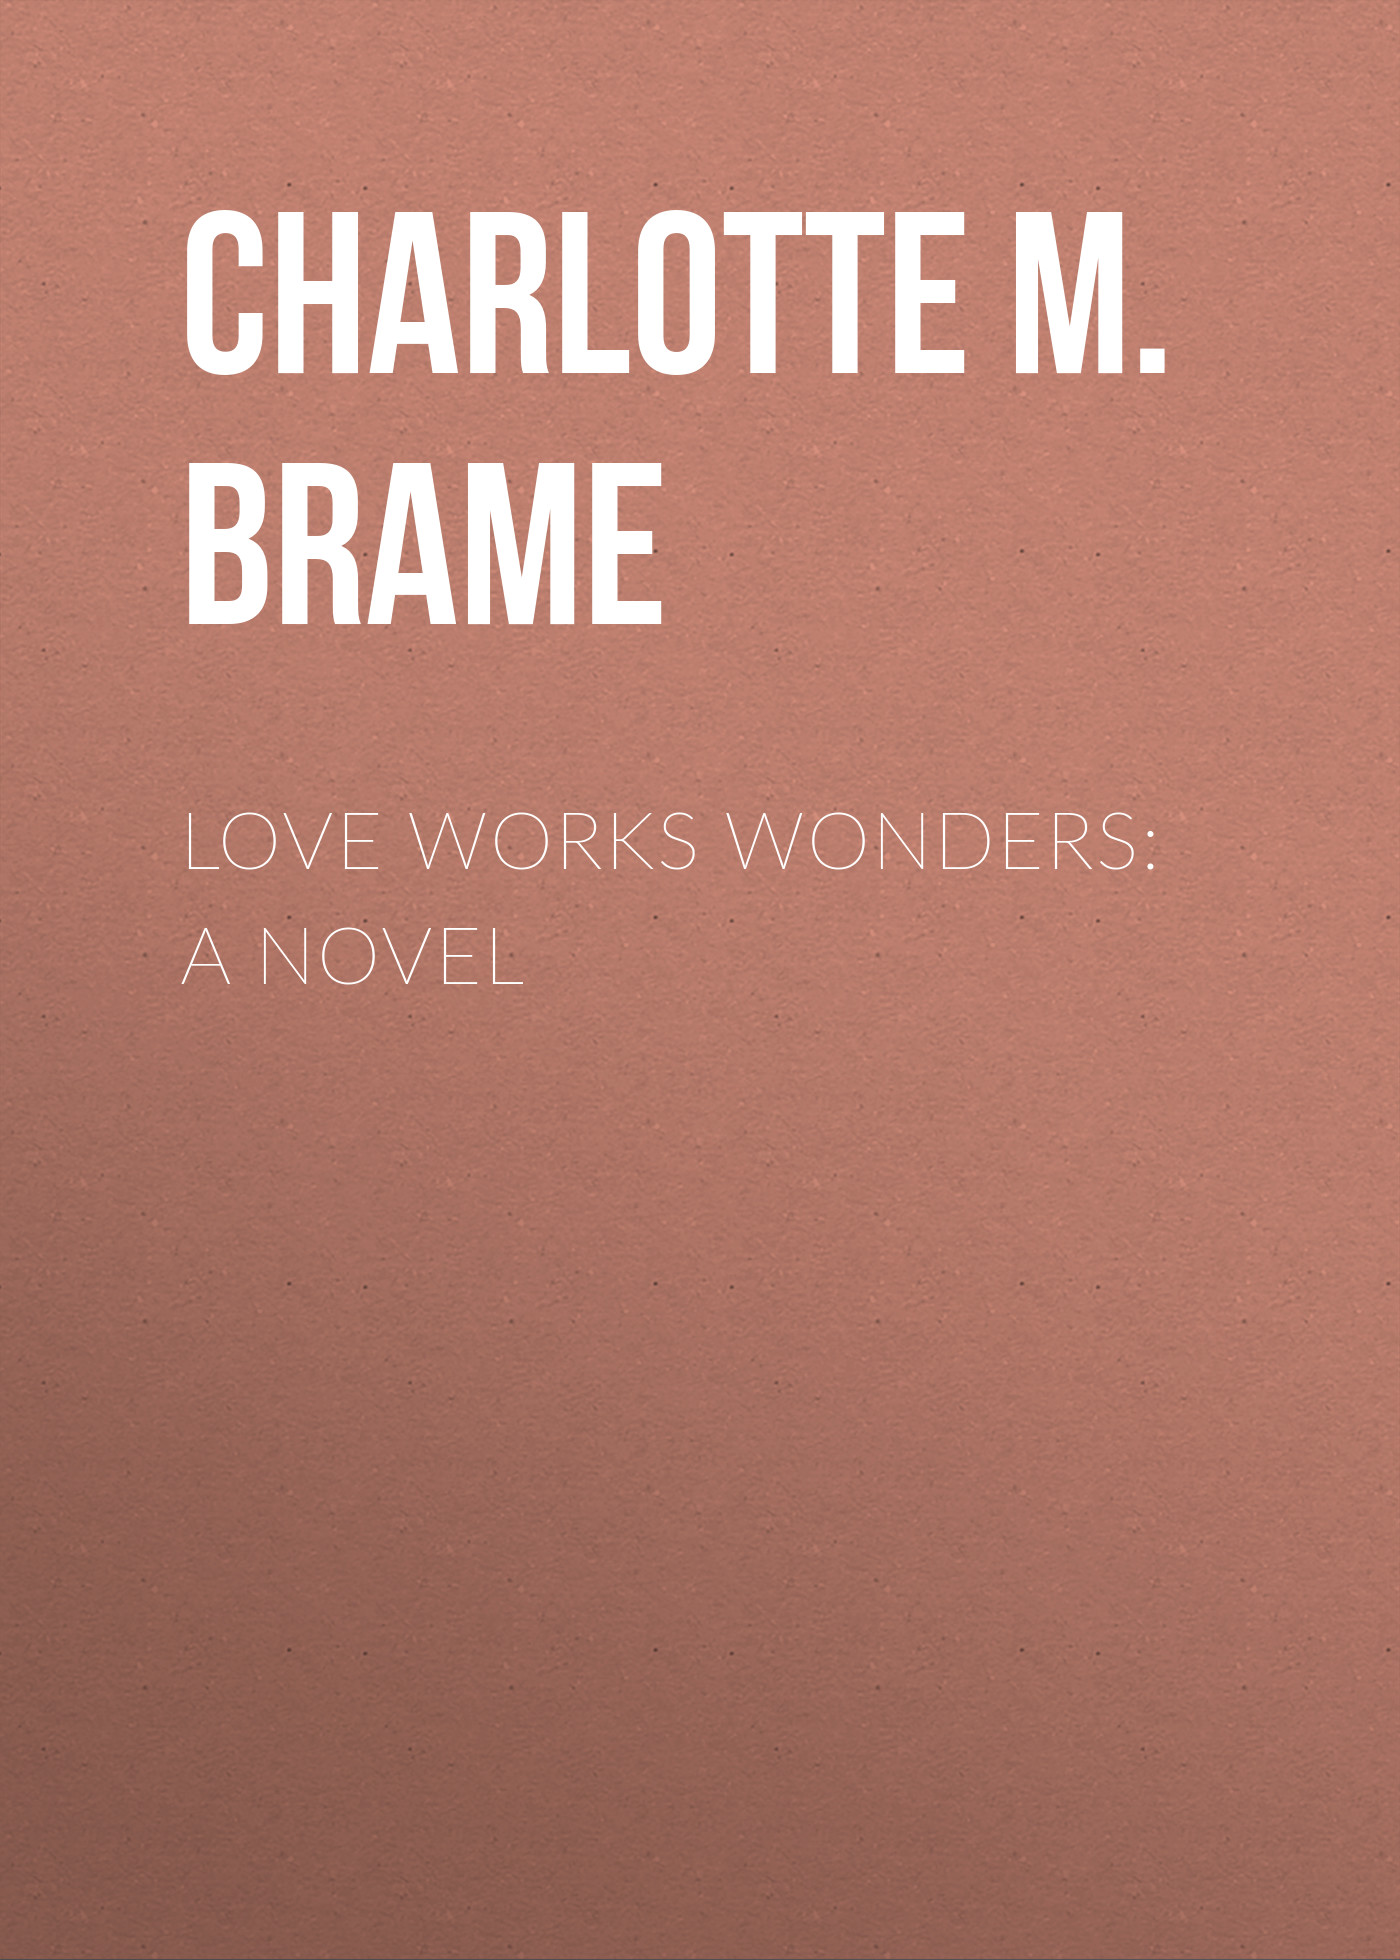 Charlotte M. Brame Love Works Wonders: A Novel charlotte m brame a mad love